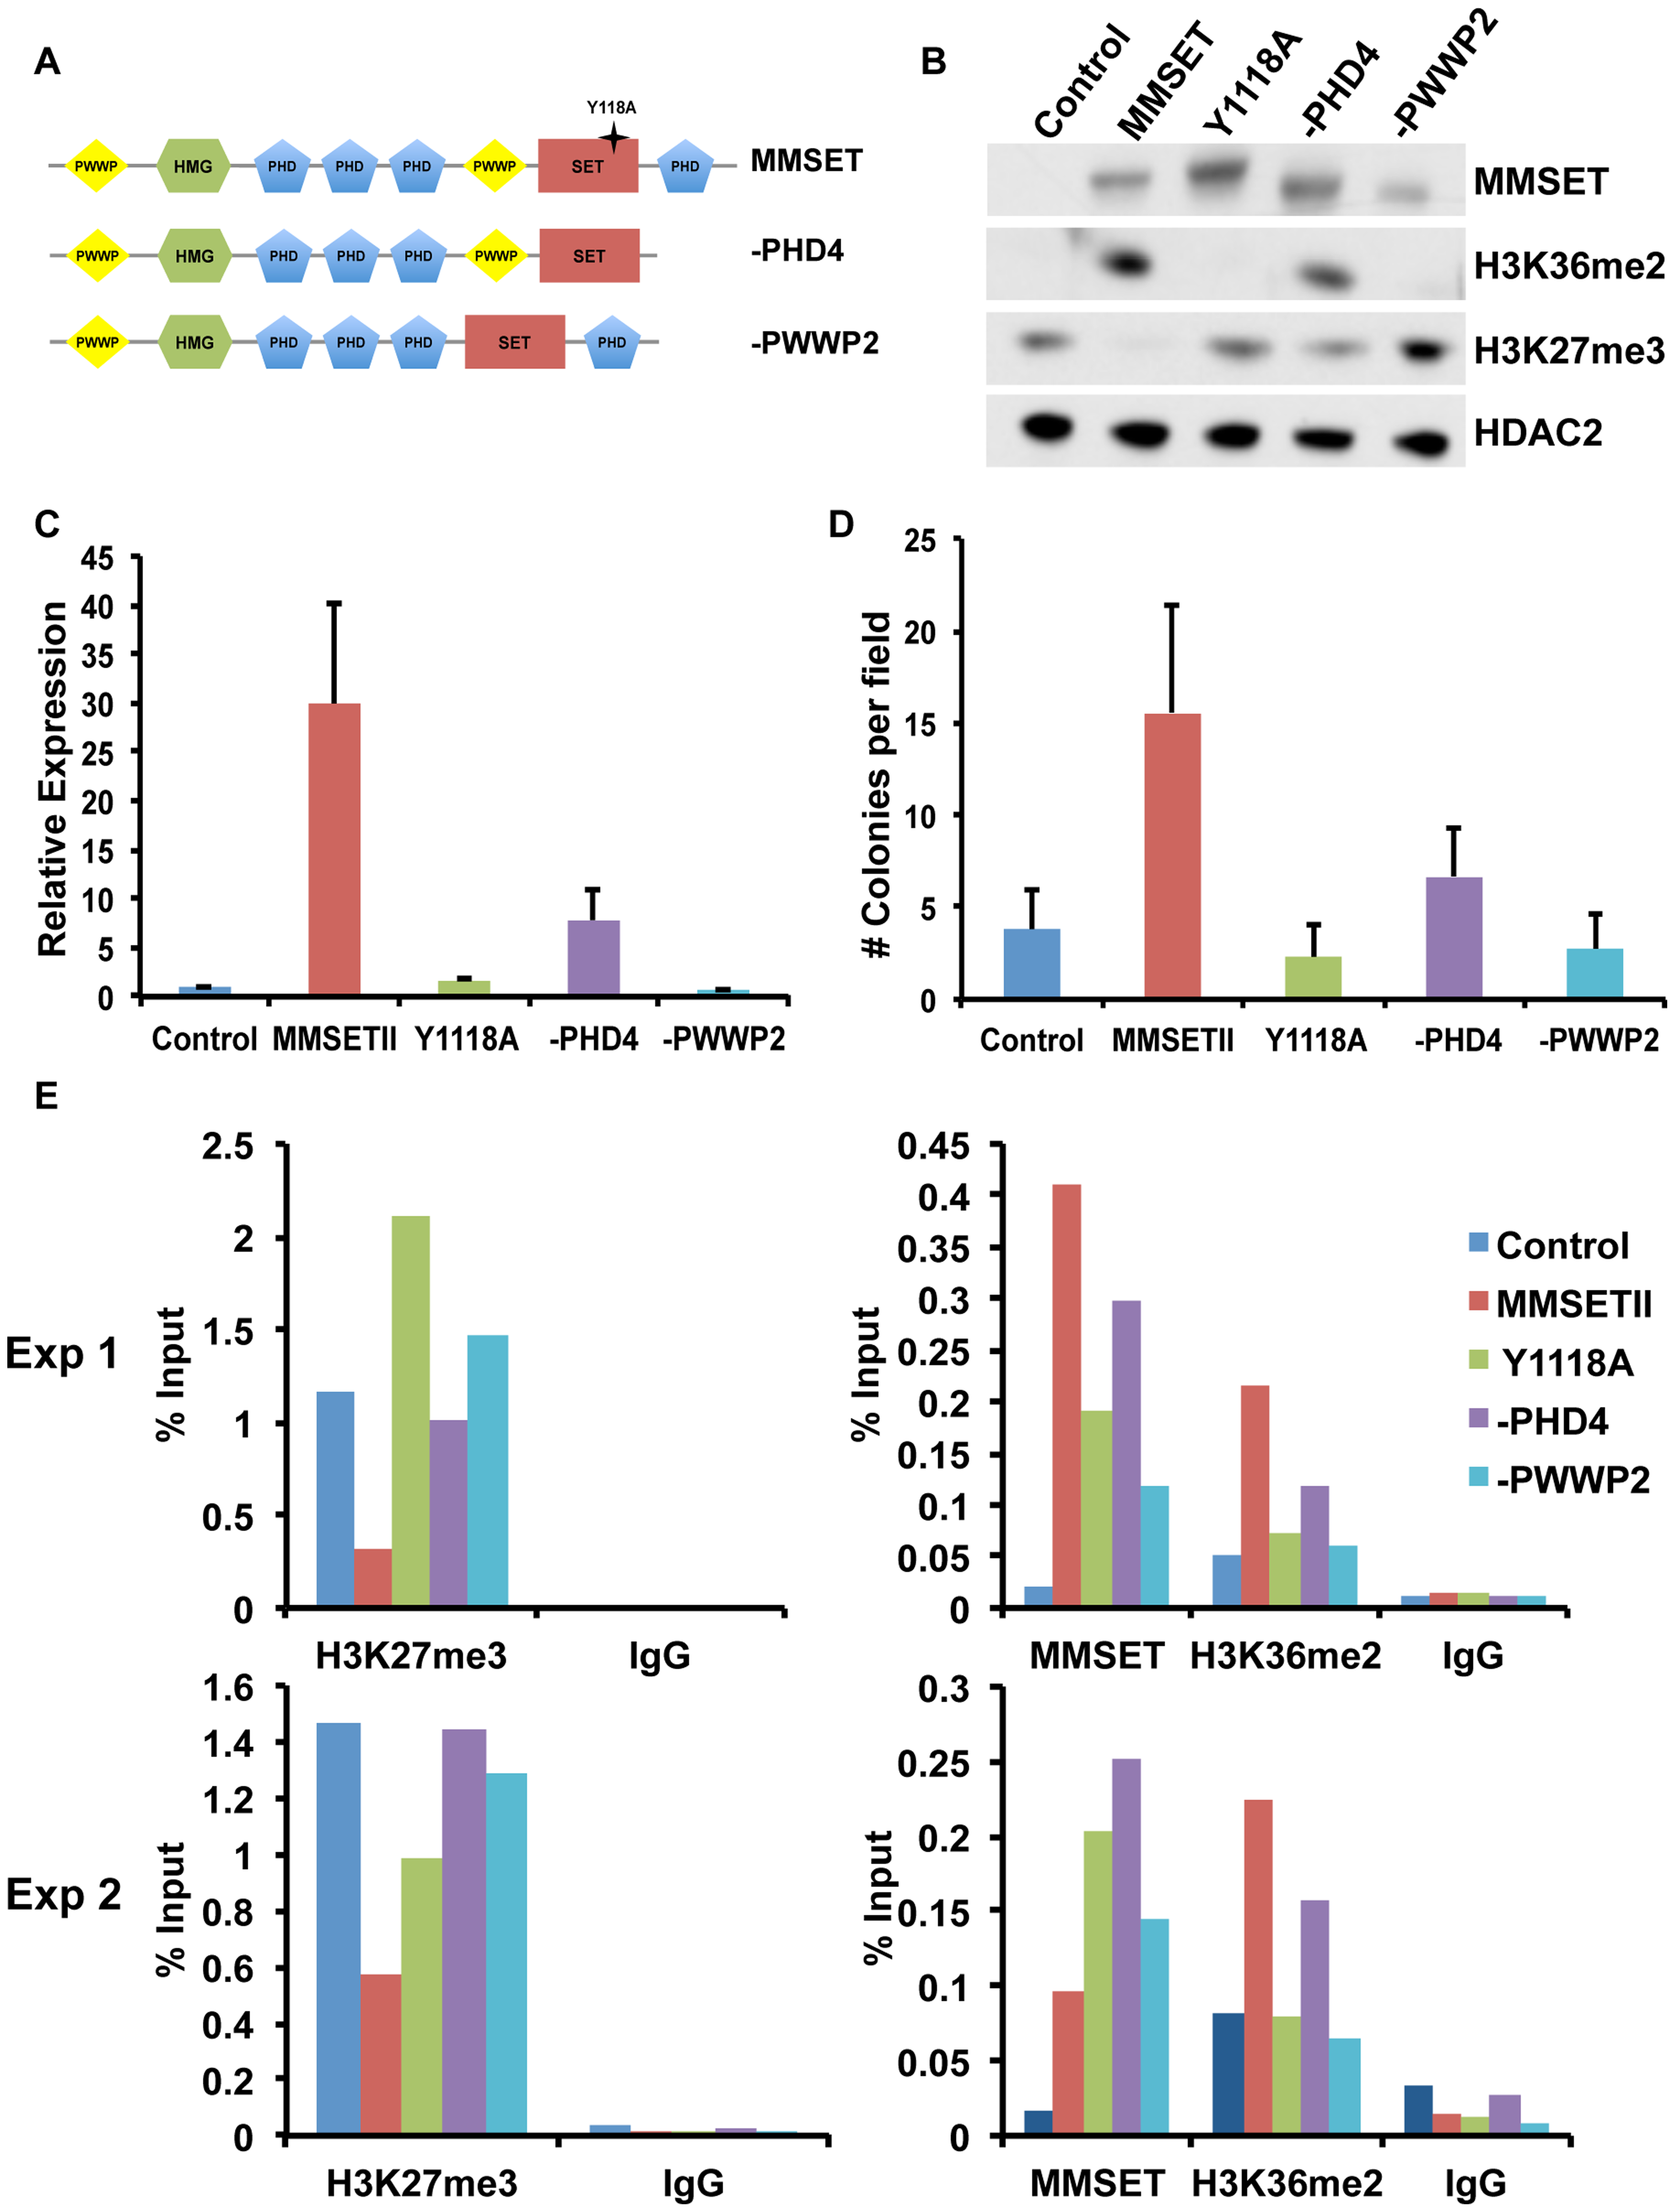 The MMSET-induced epigenetic switch depends on multiple domains.